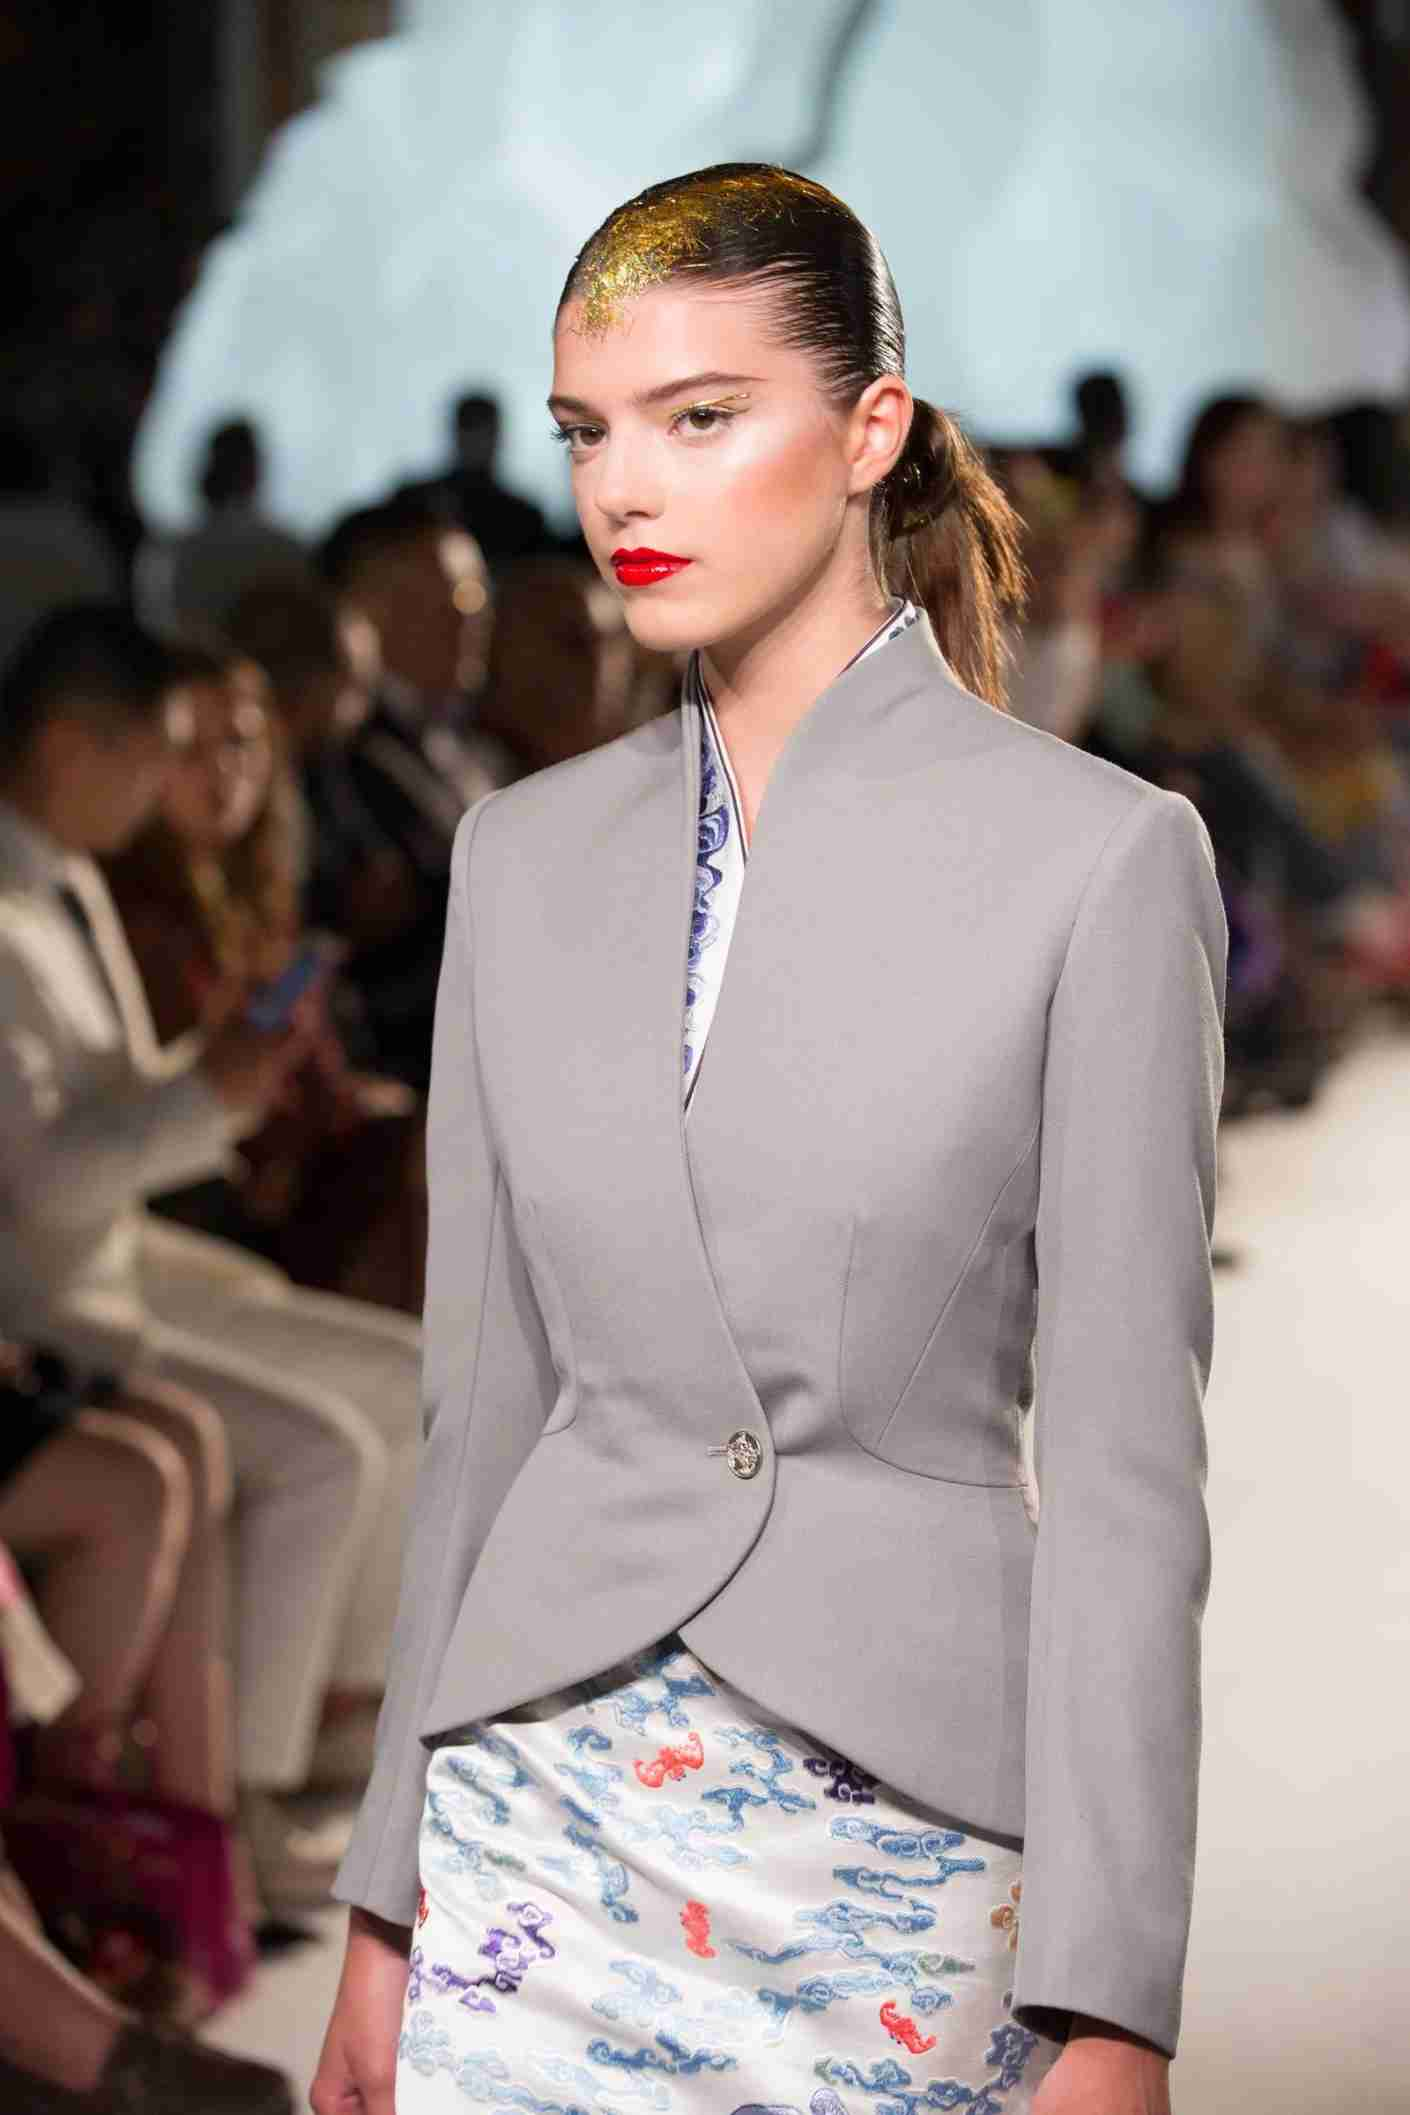 Hainan Airlines New Uniform at Couture Show (PRNewsfoto/Hainan Airlines Holding Co., LT)